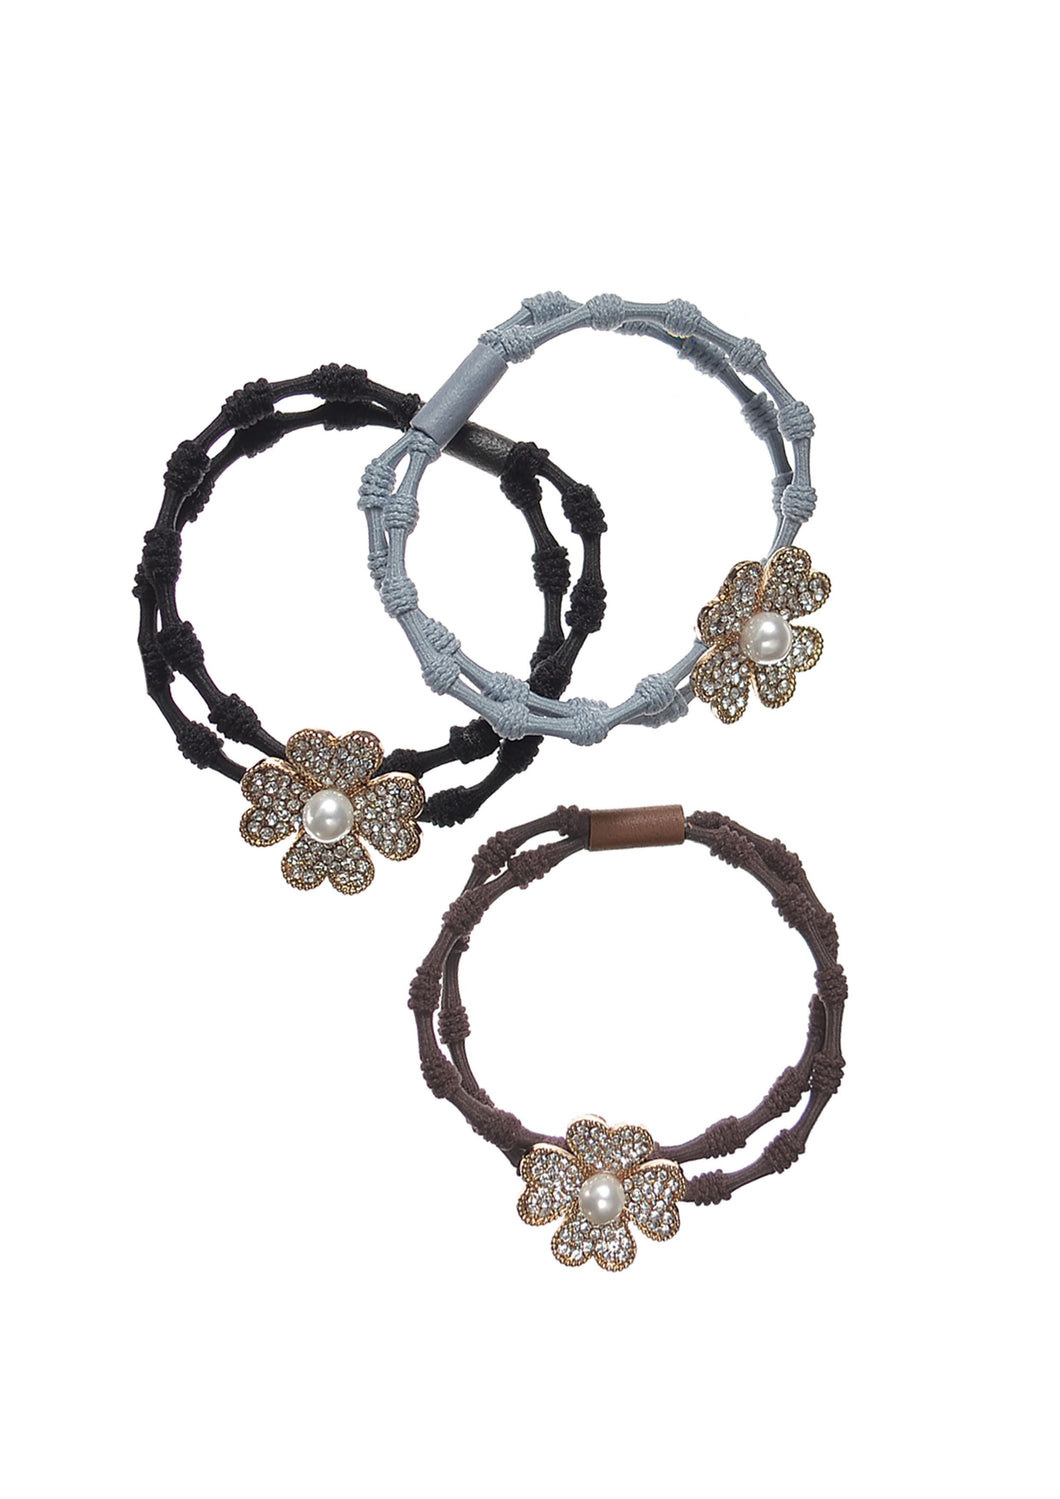 Flower bracelet bands with pearl detailing